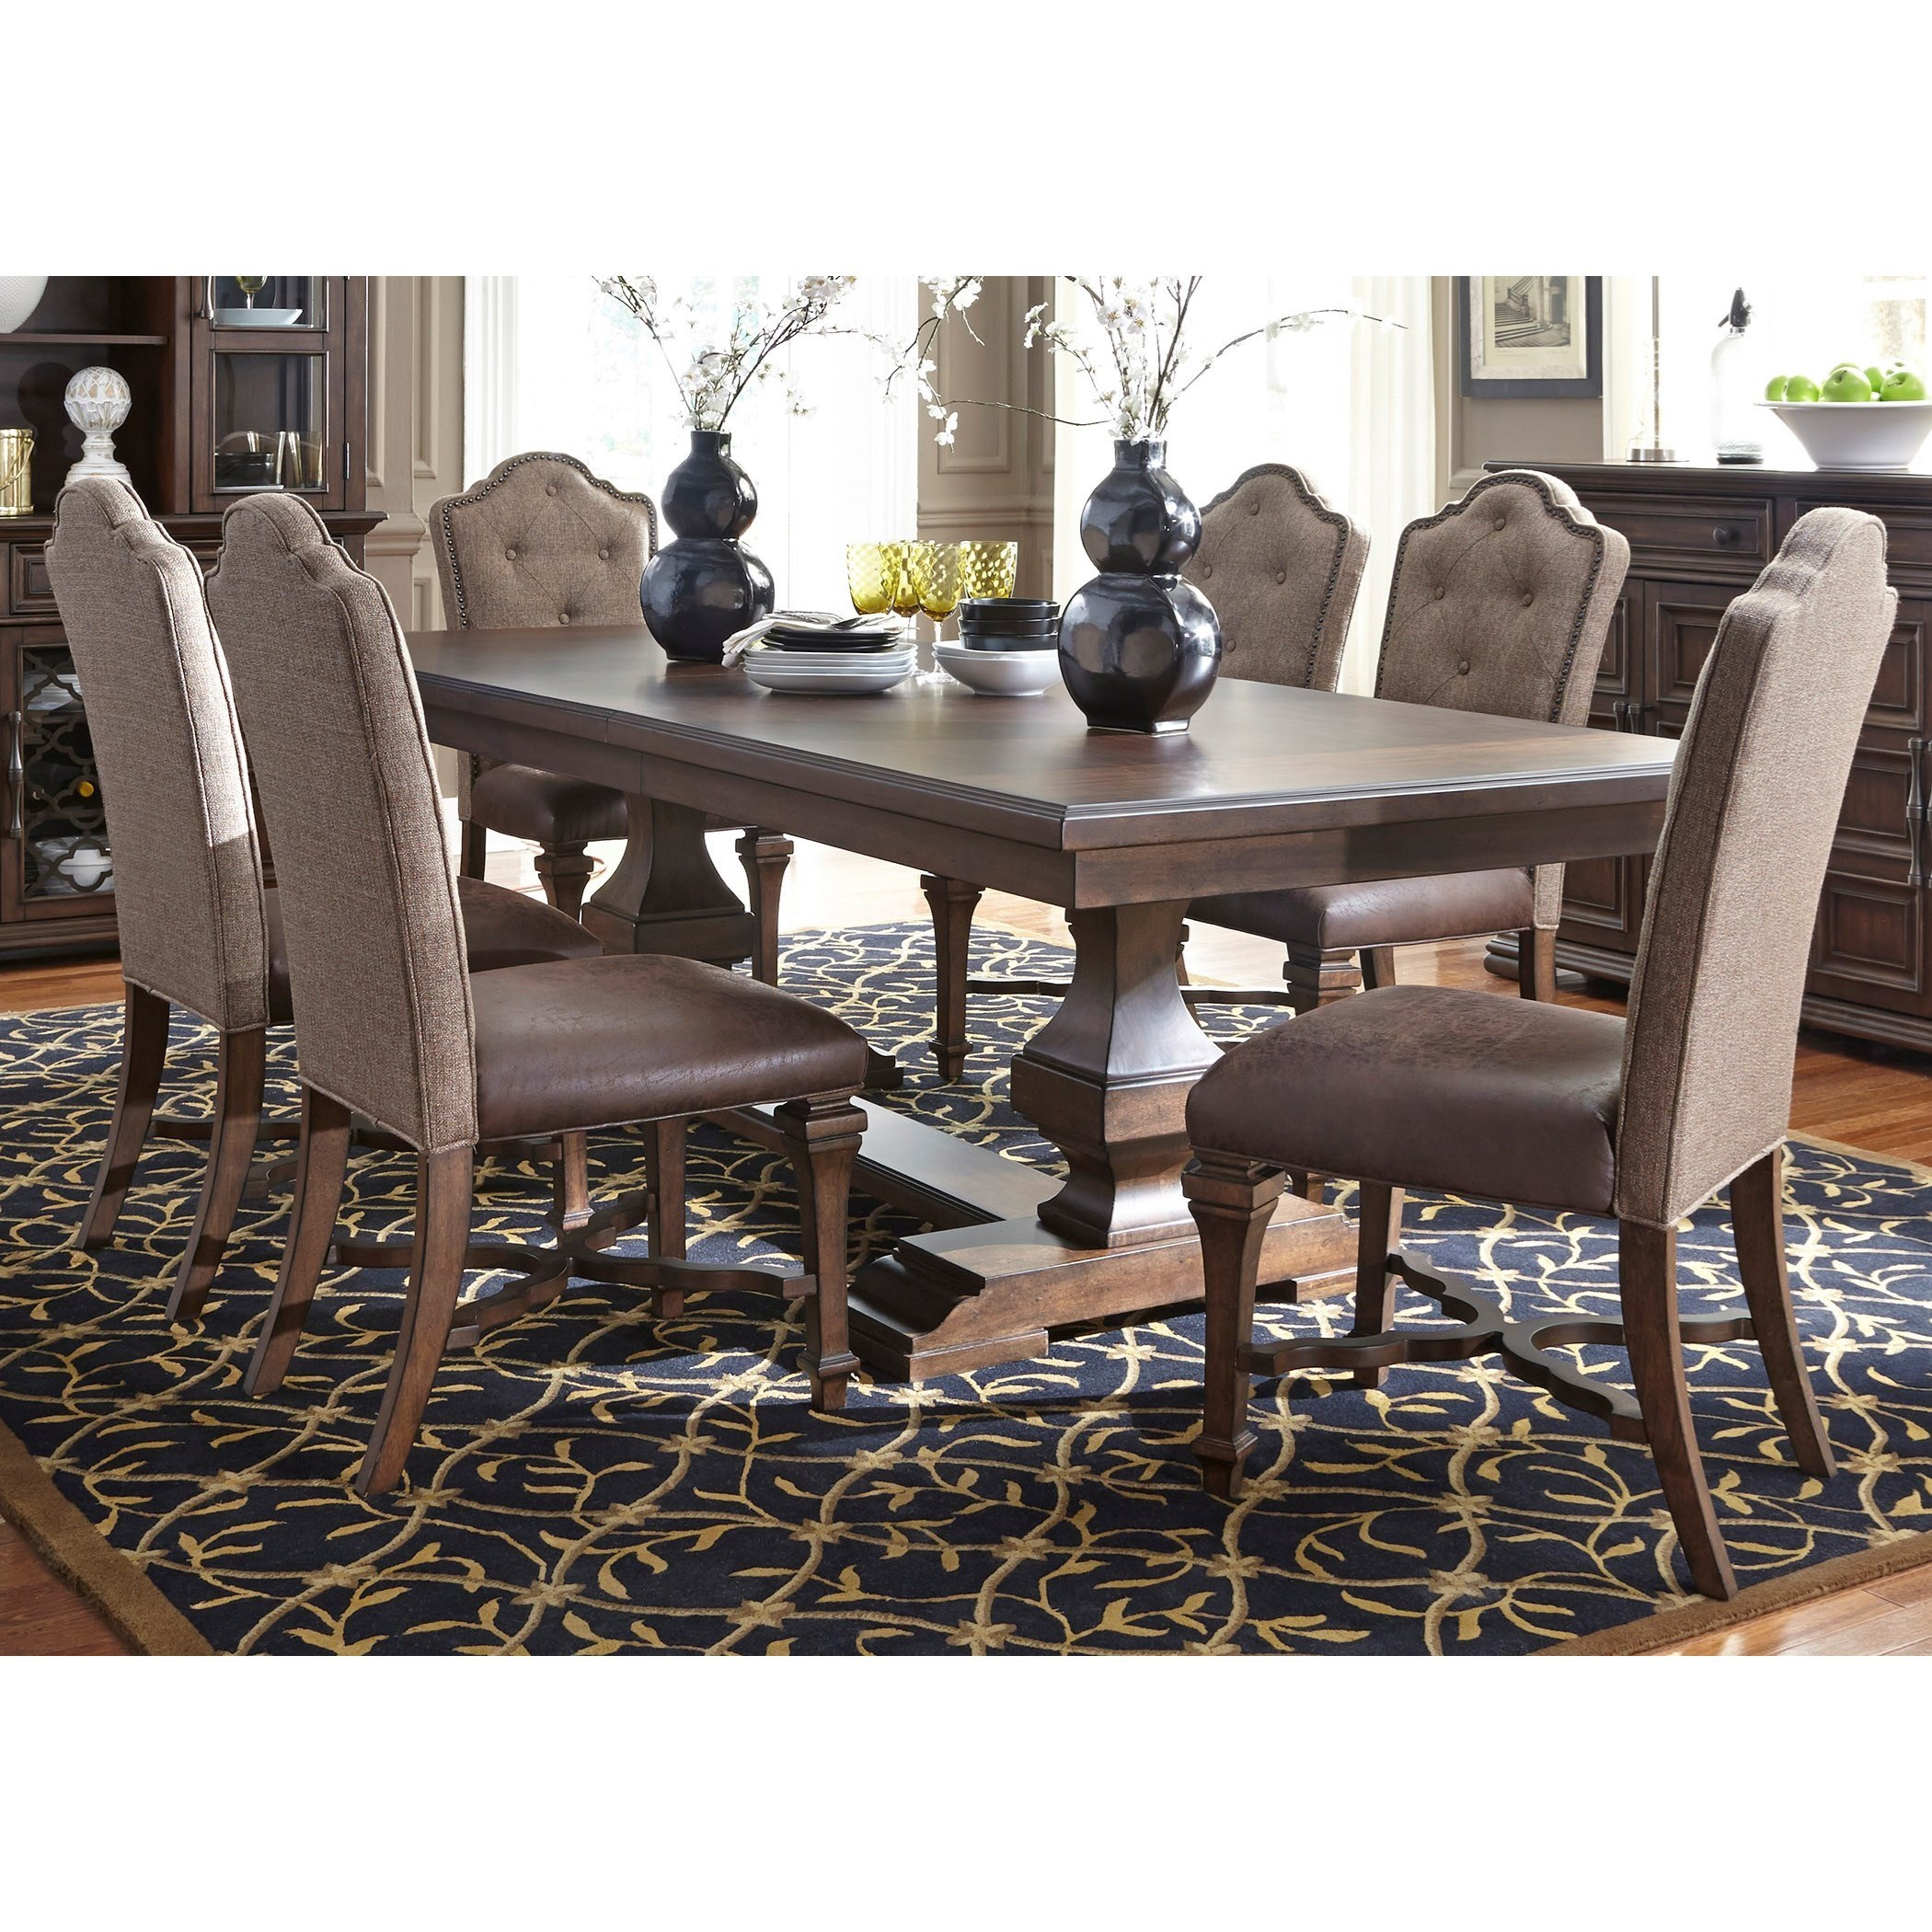 upholstered chairs for dining room bedroom sofa chair liberty furniture lucca formal 7 piece two pedestal table and lucca7 set